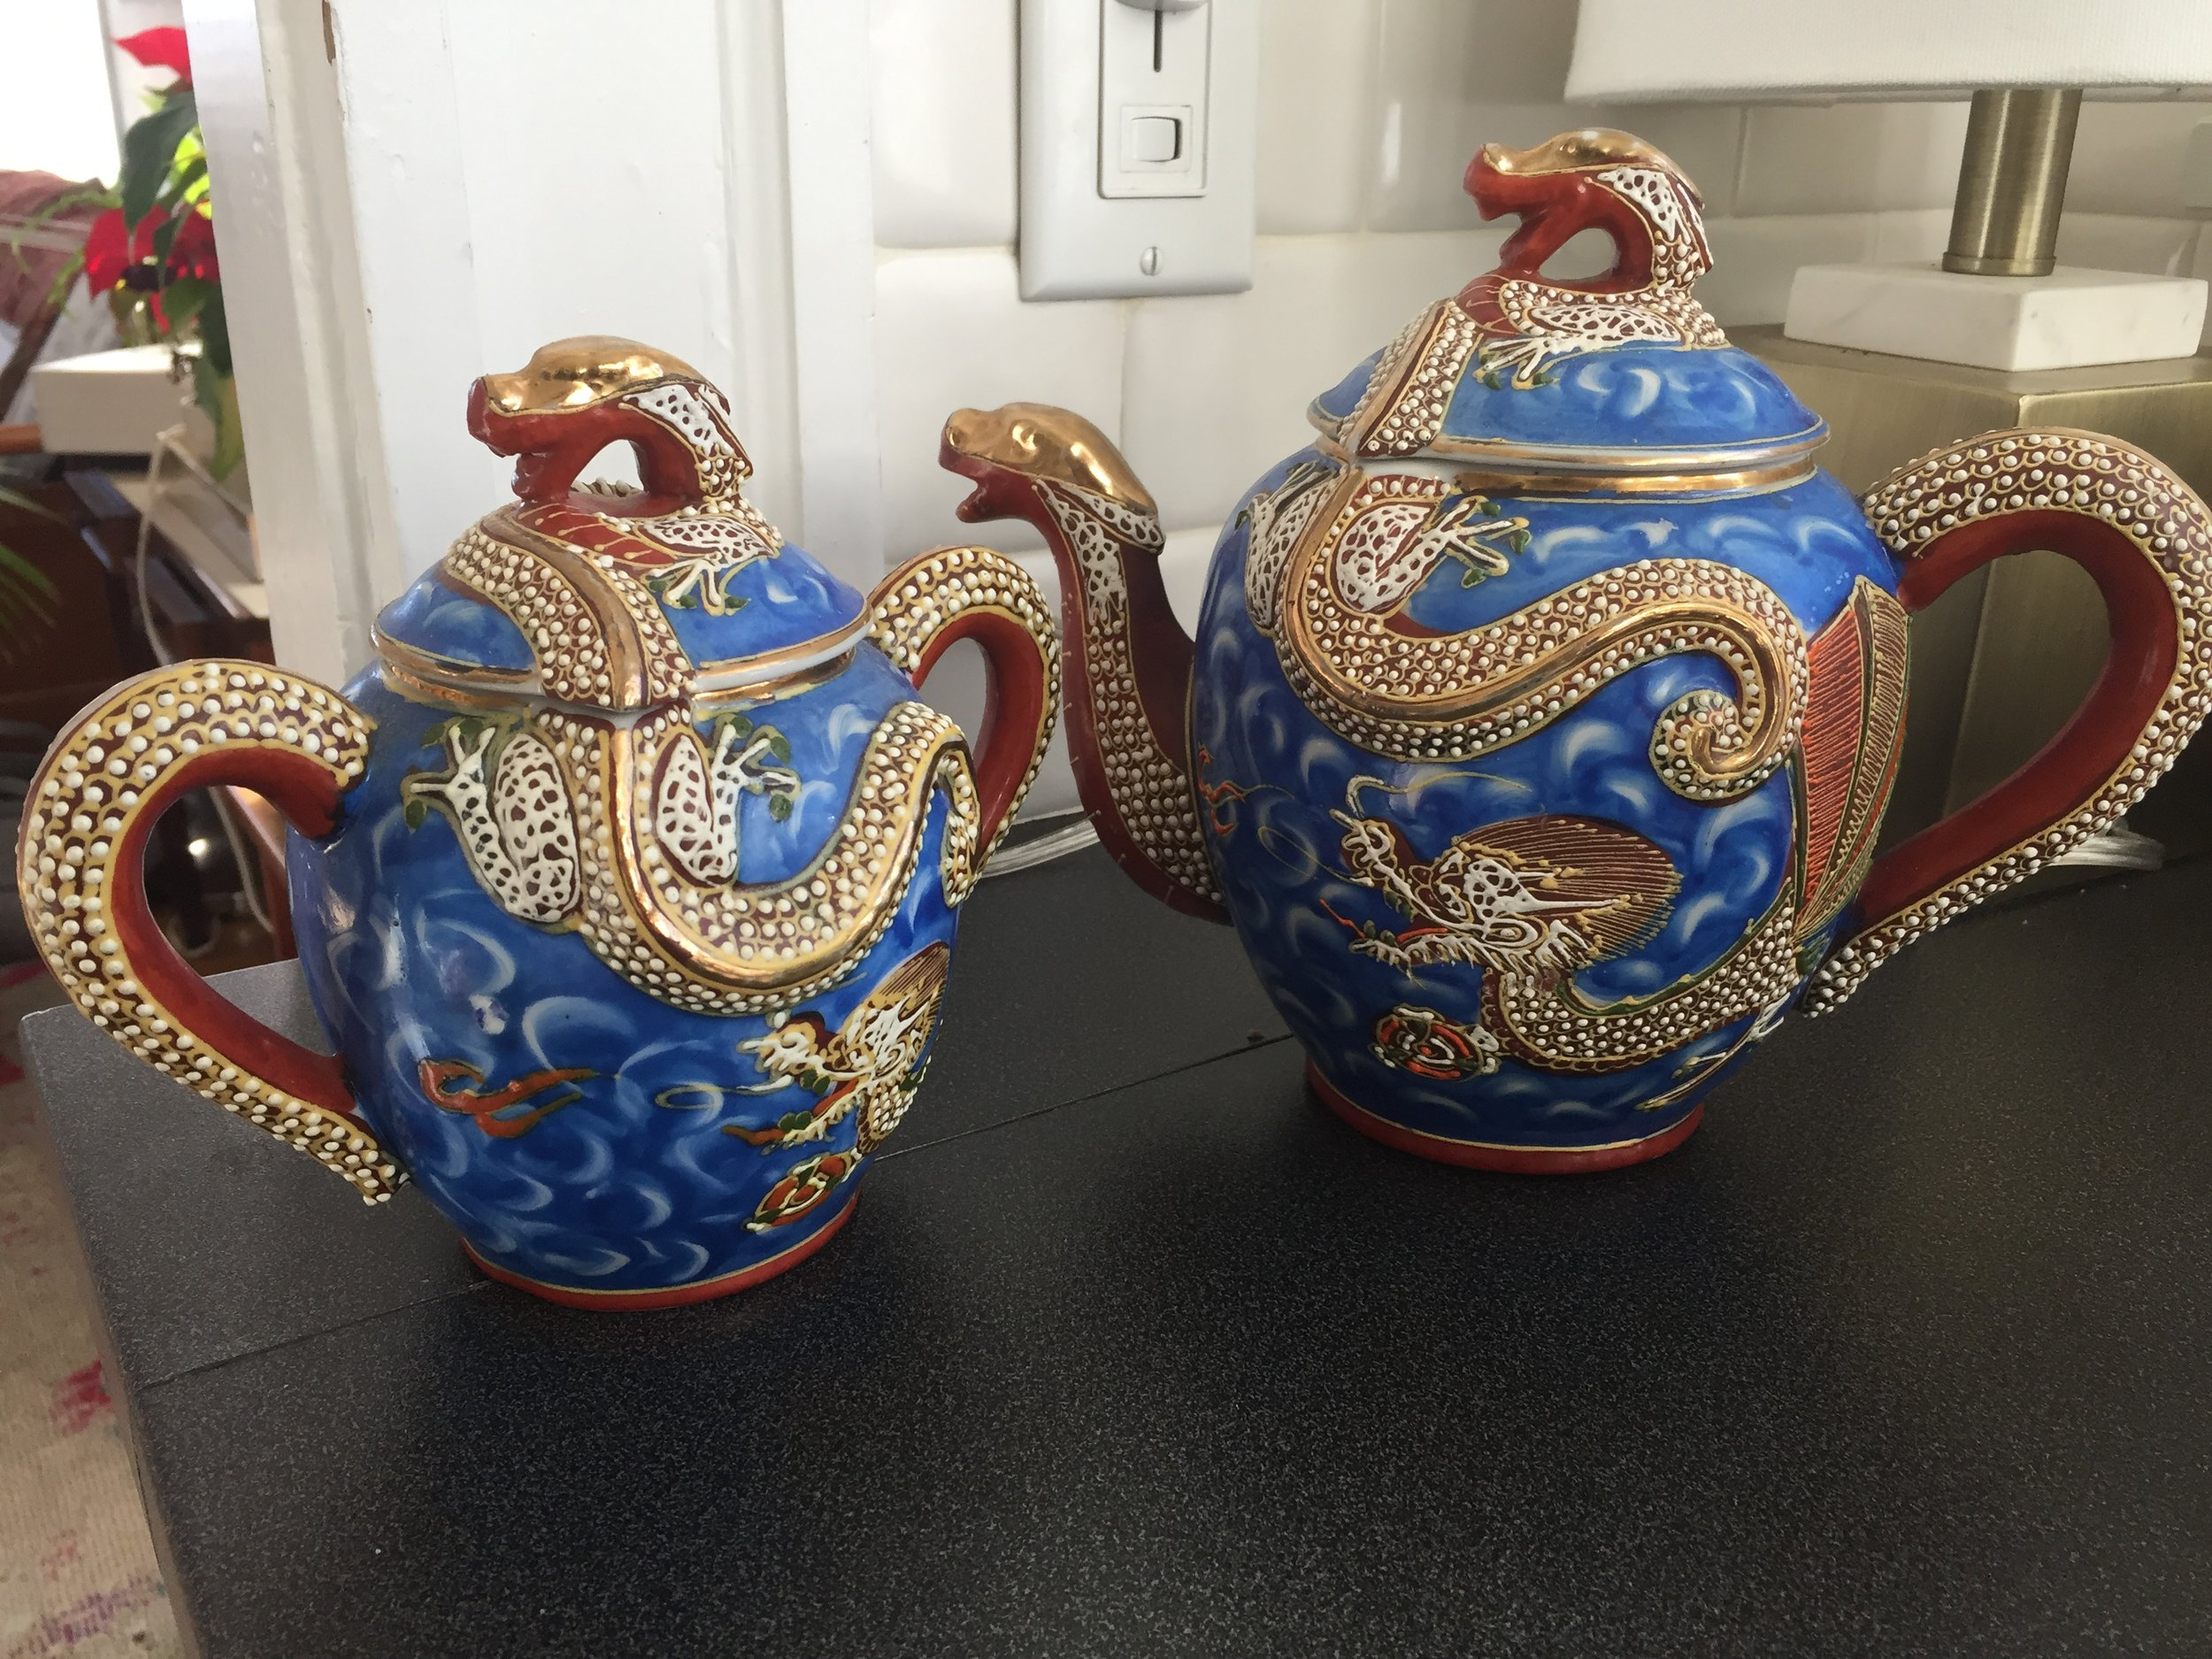 I spotted a this full dragon tea set at a consignment shop for a song.